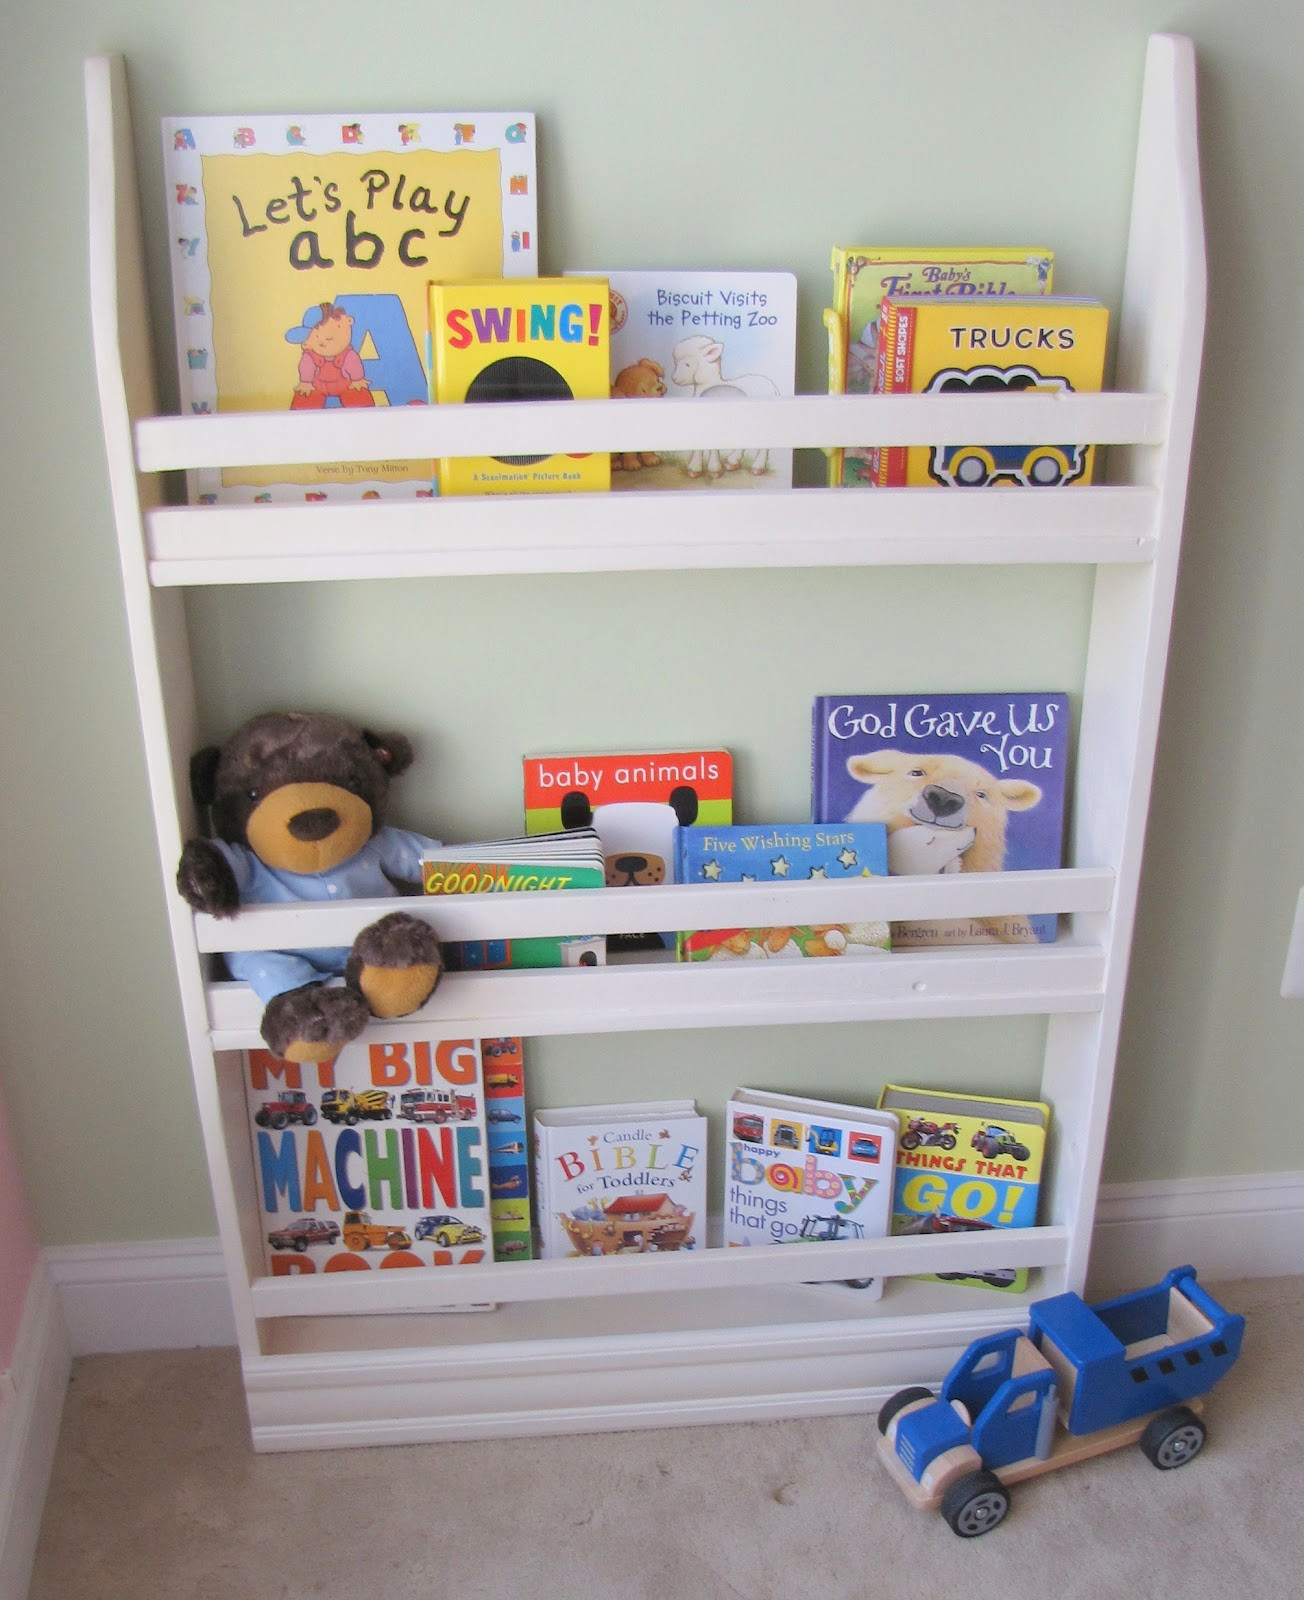 Best ideas about DIY Kids Bookcase . Save or Pin Lipstick and Sawdust PB Inspired Bookshelves Now.